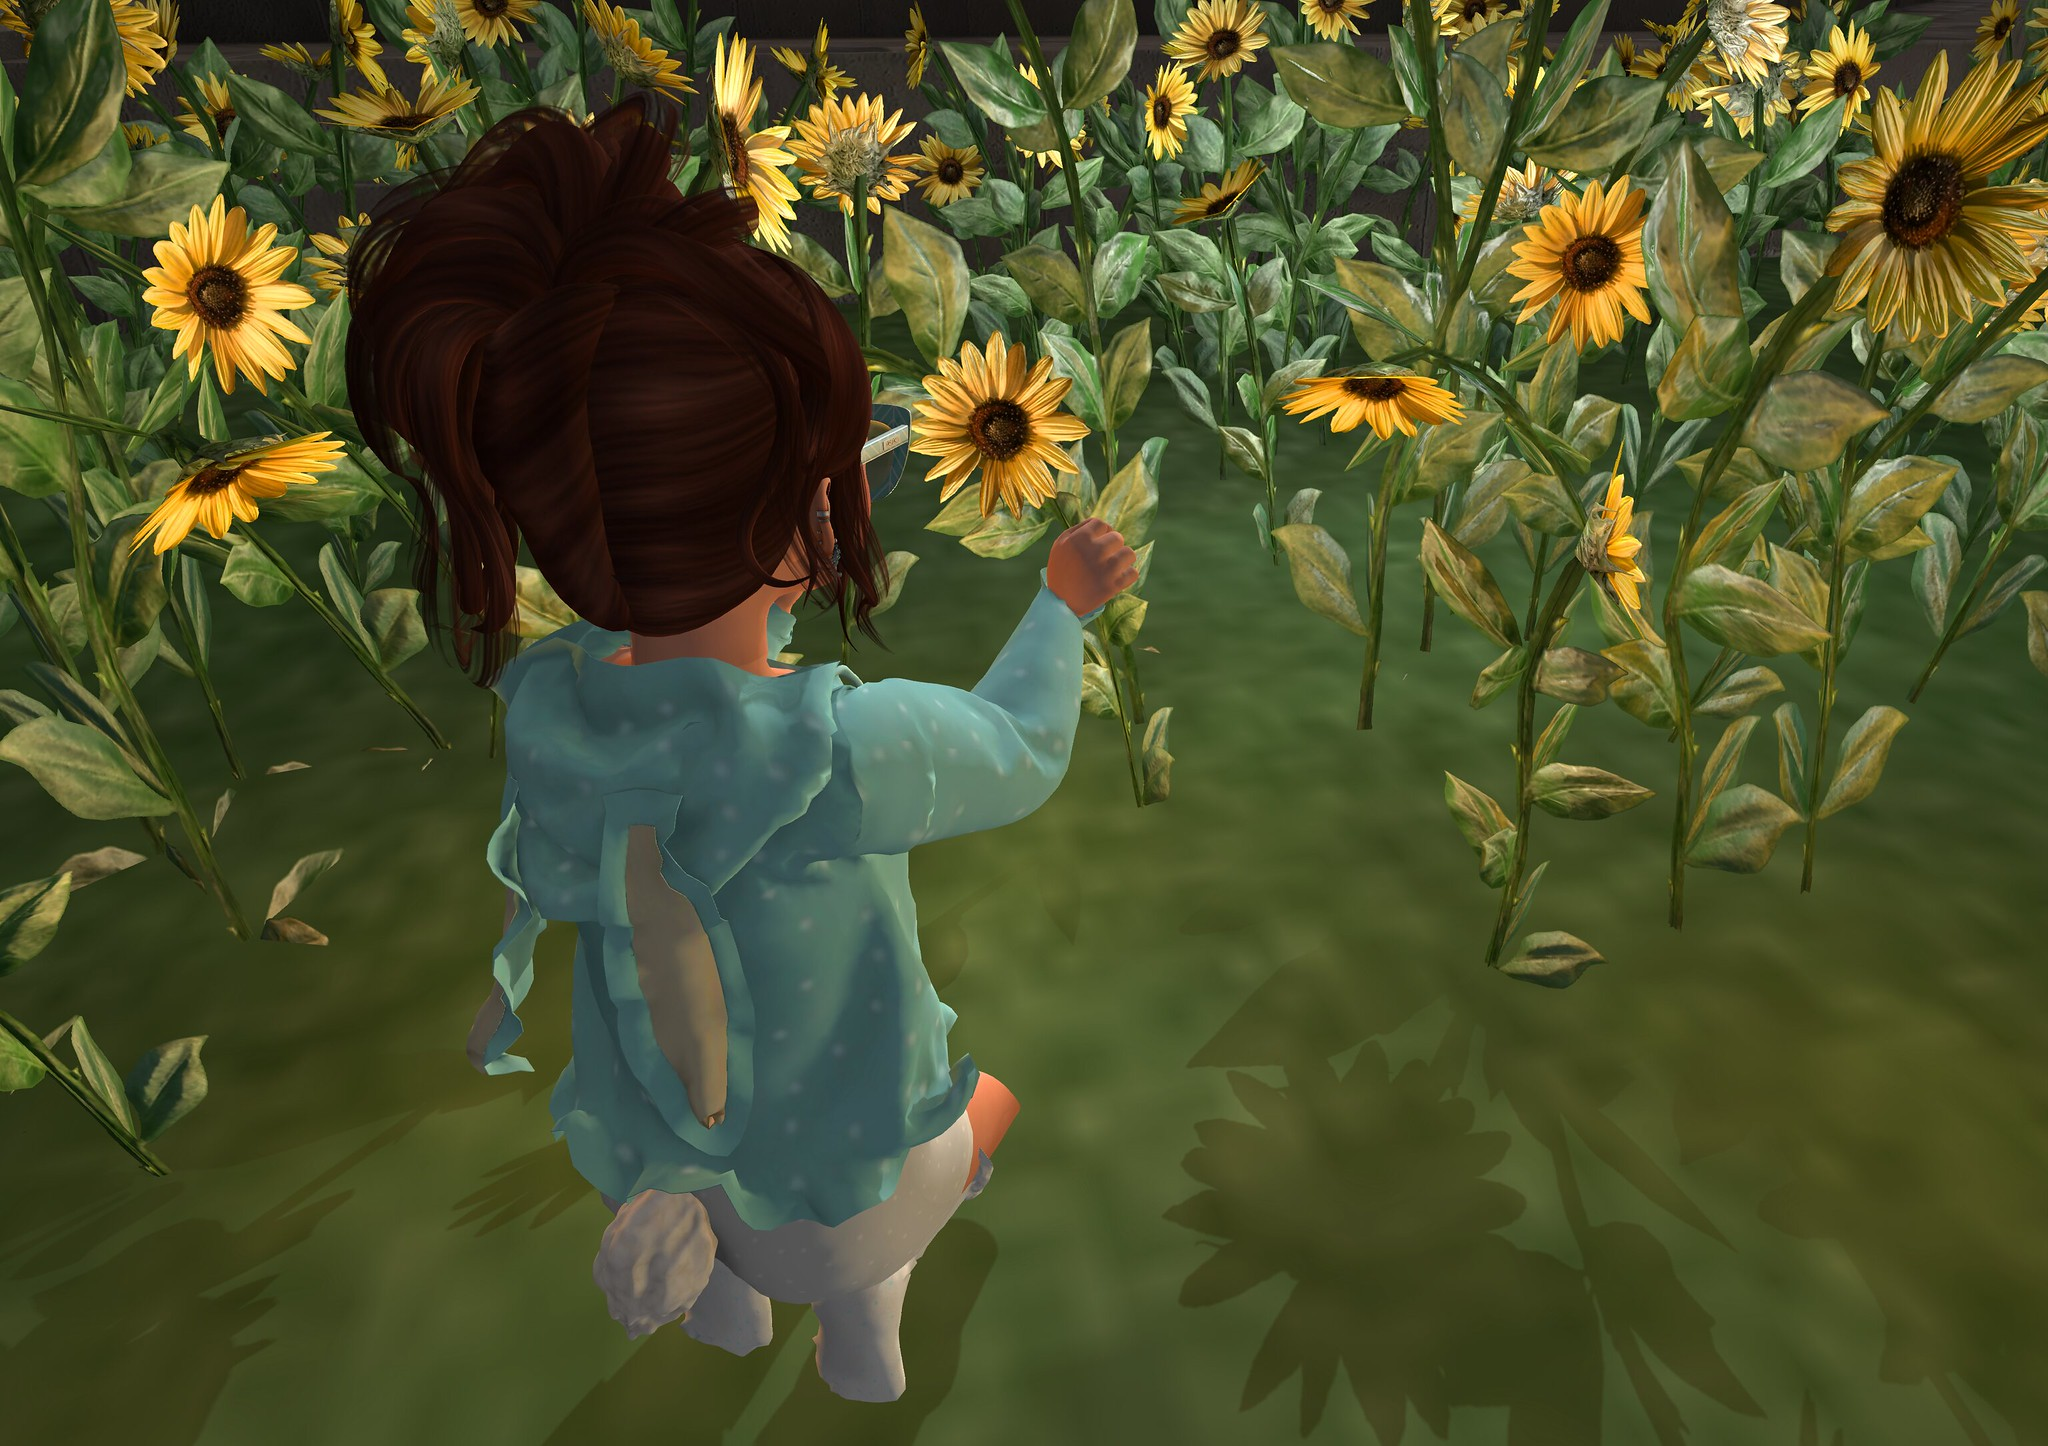 Picking Daisy for Mom - Kneel